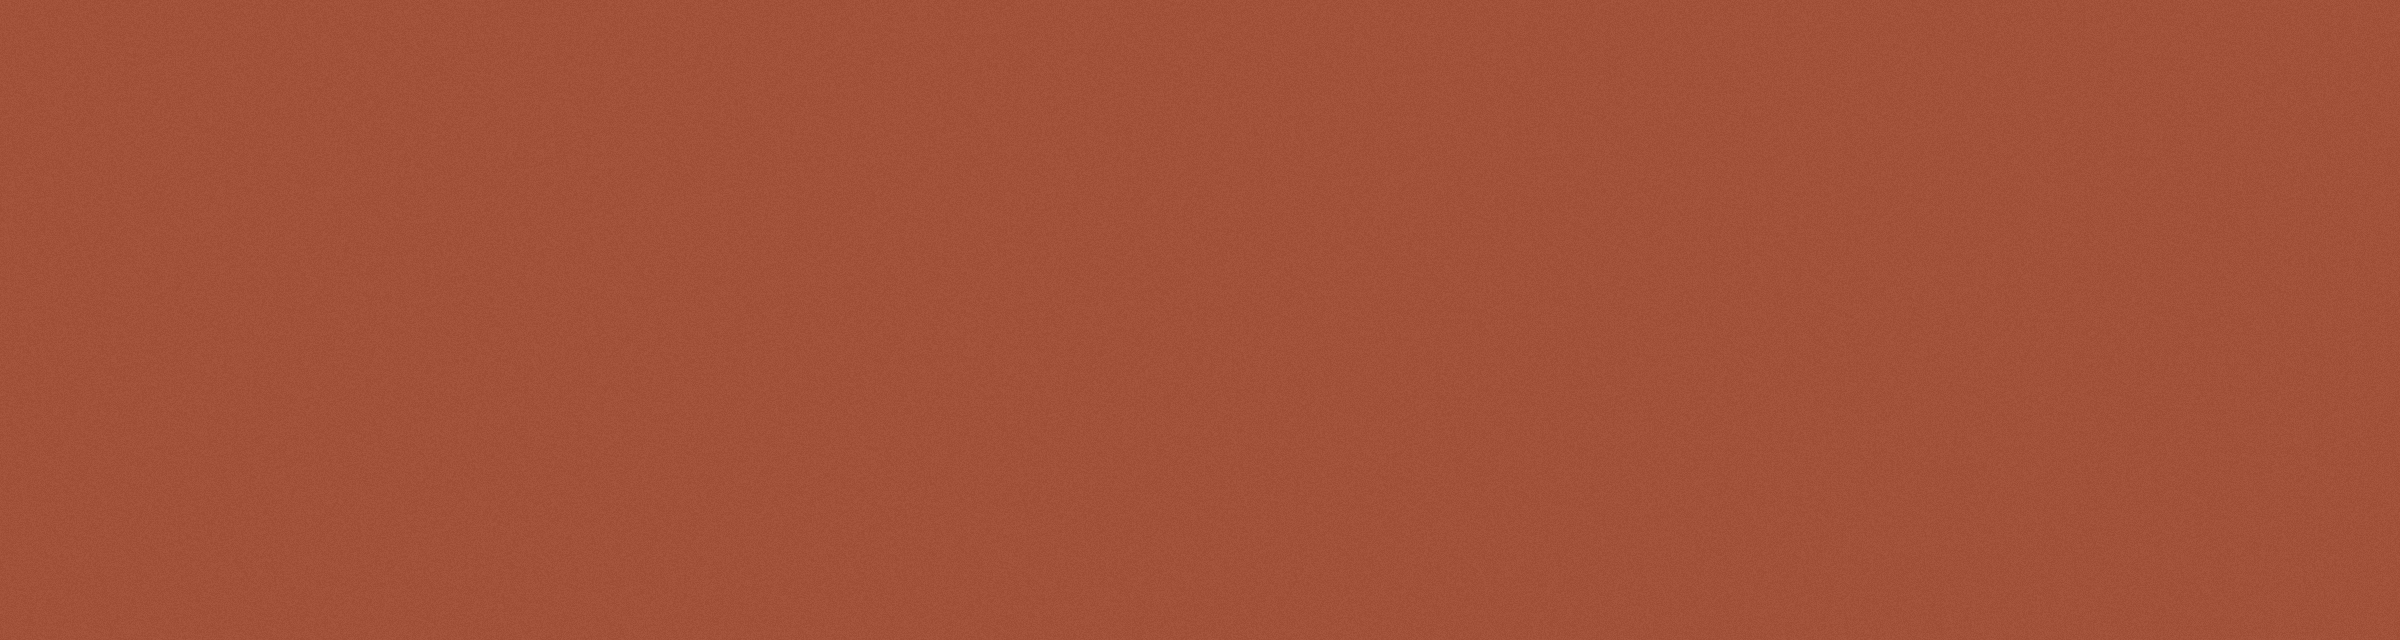 larger burnt red textured background